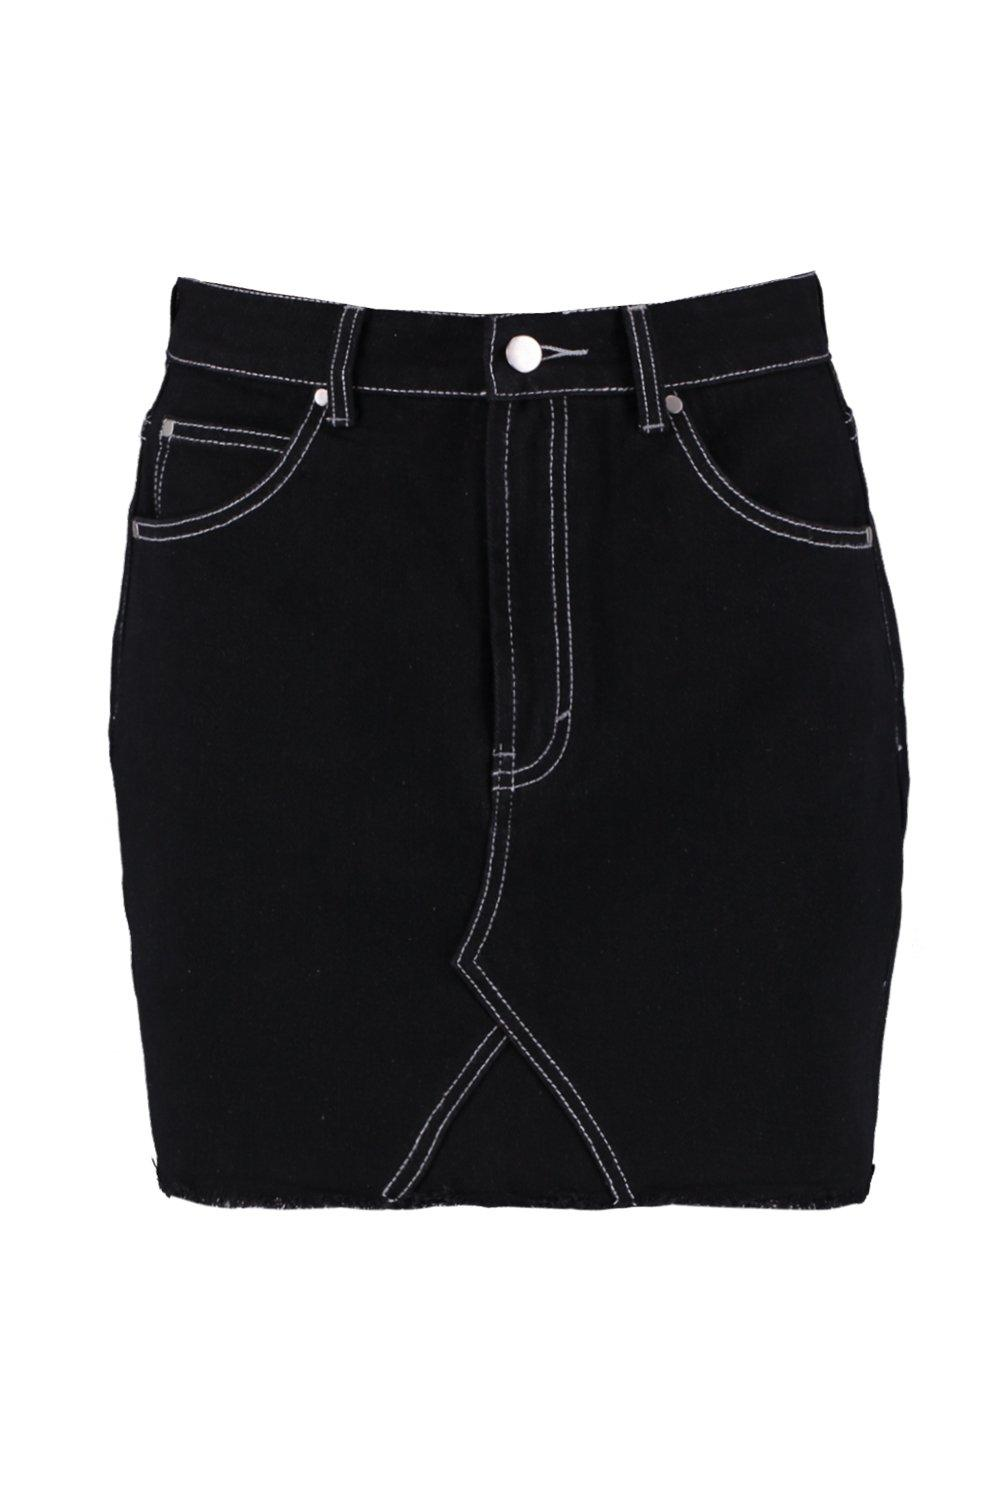 Skirt Denim Contrast black Contrast Stitch Stitch Zz0IqT